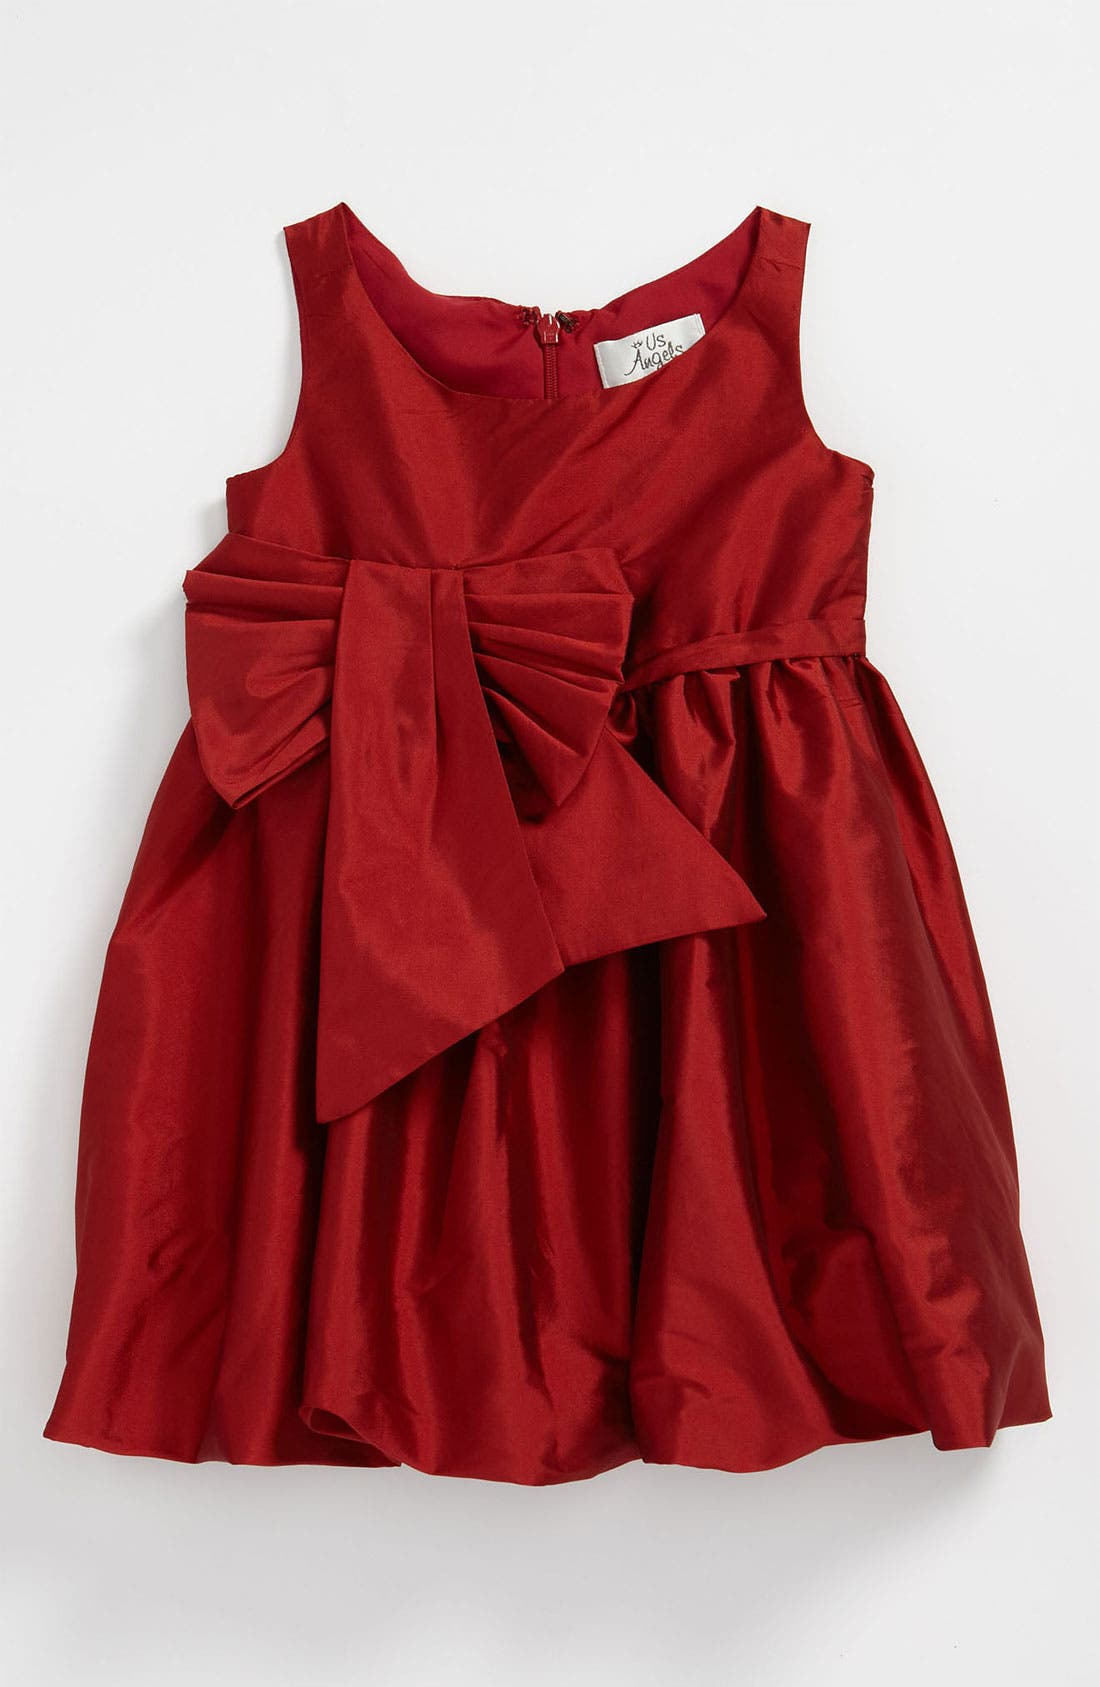 Alternate Image 1 Selected - Us Angels 'Bow' Bubble Dress (Toddler)